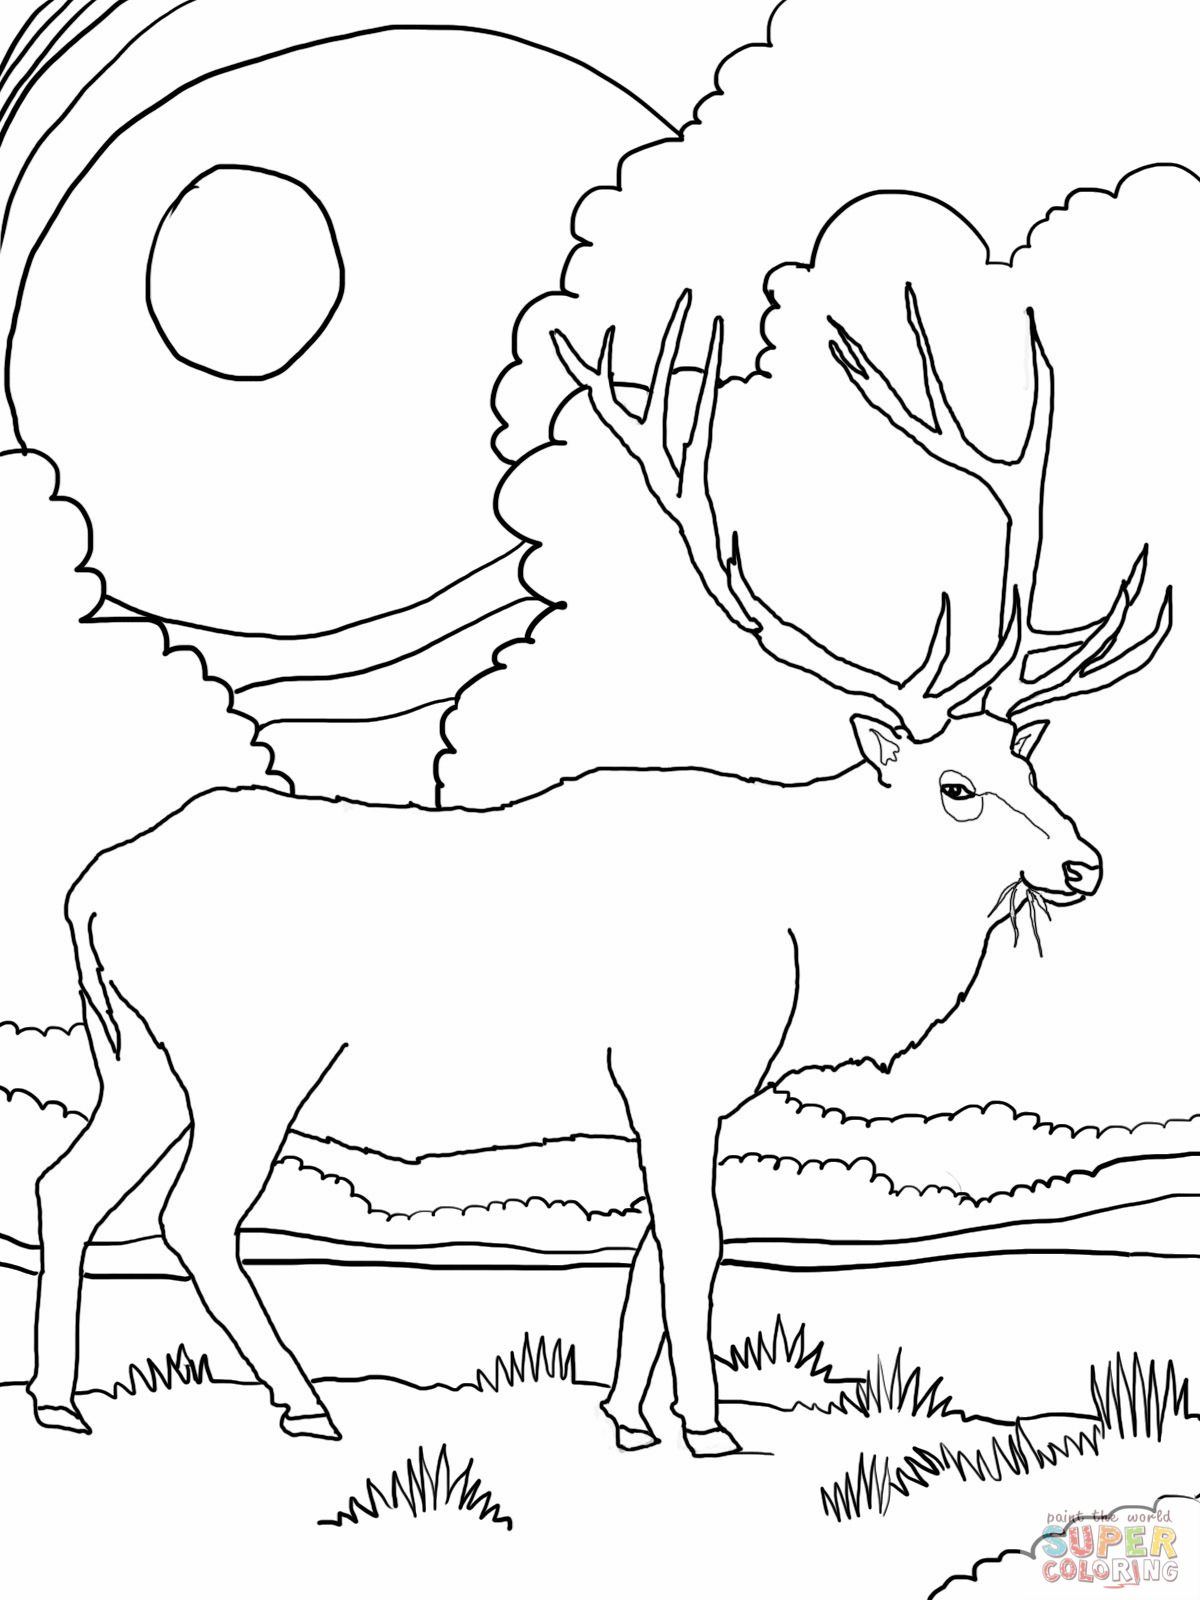 Rocky Mountain Elk | embrodiey | Pinterest | Stenciling, Embroidery ...